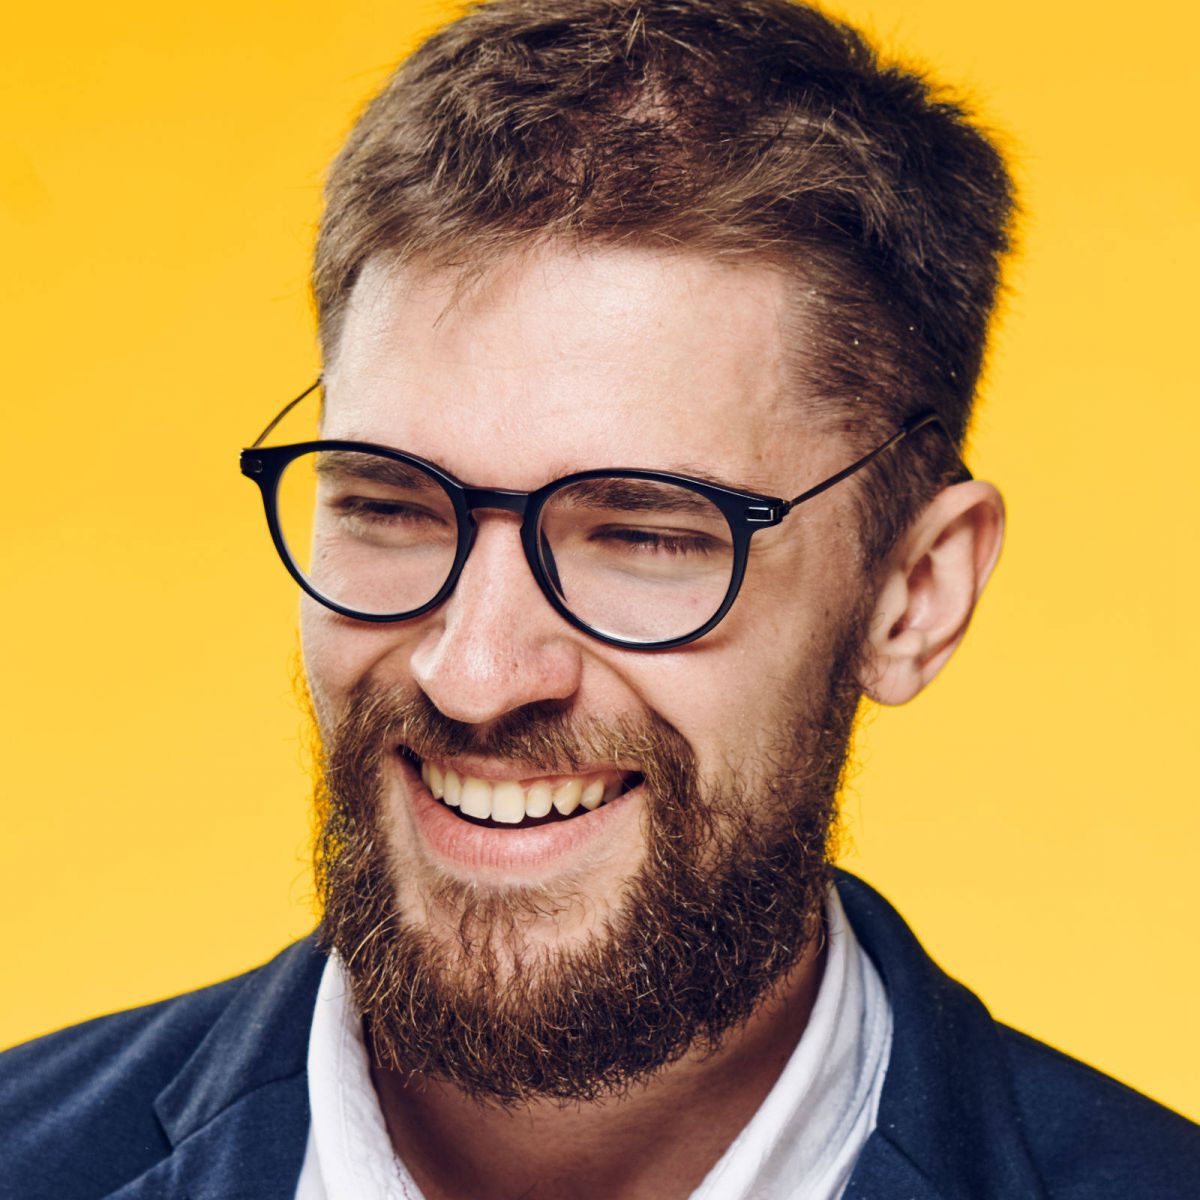 Top 30 Hairstyles For Men With Beards Regarding Short Haircuts For Glasses Wearer (View 21 of 25)